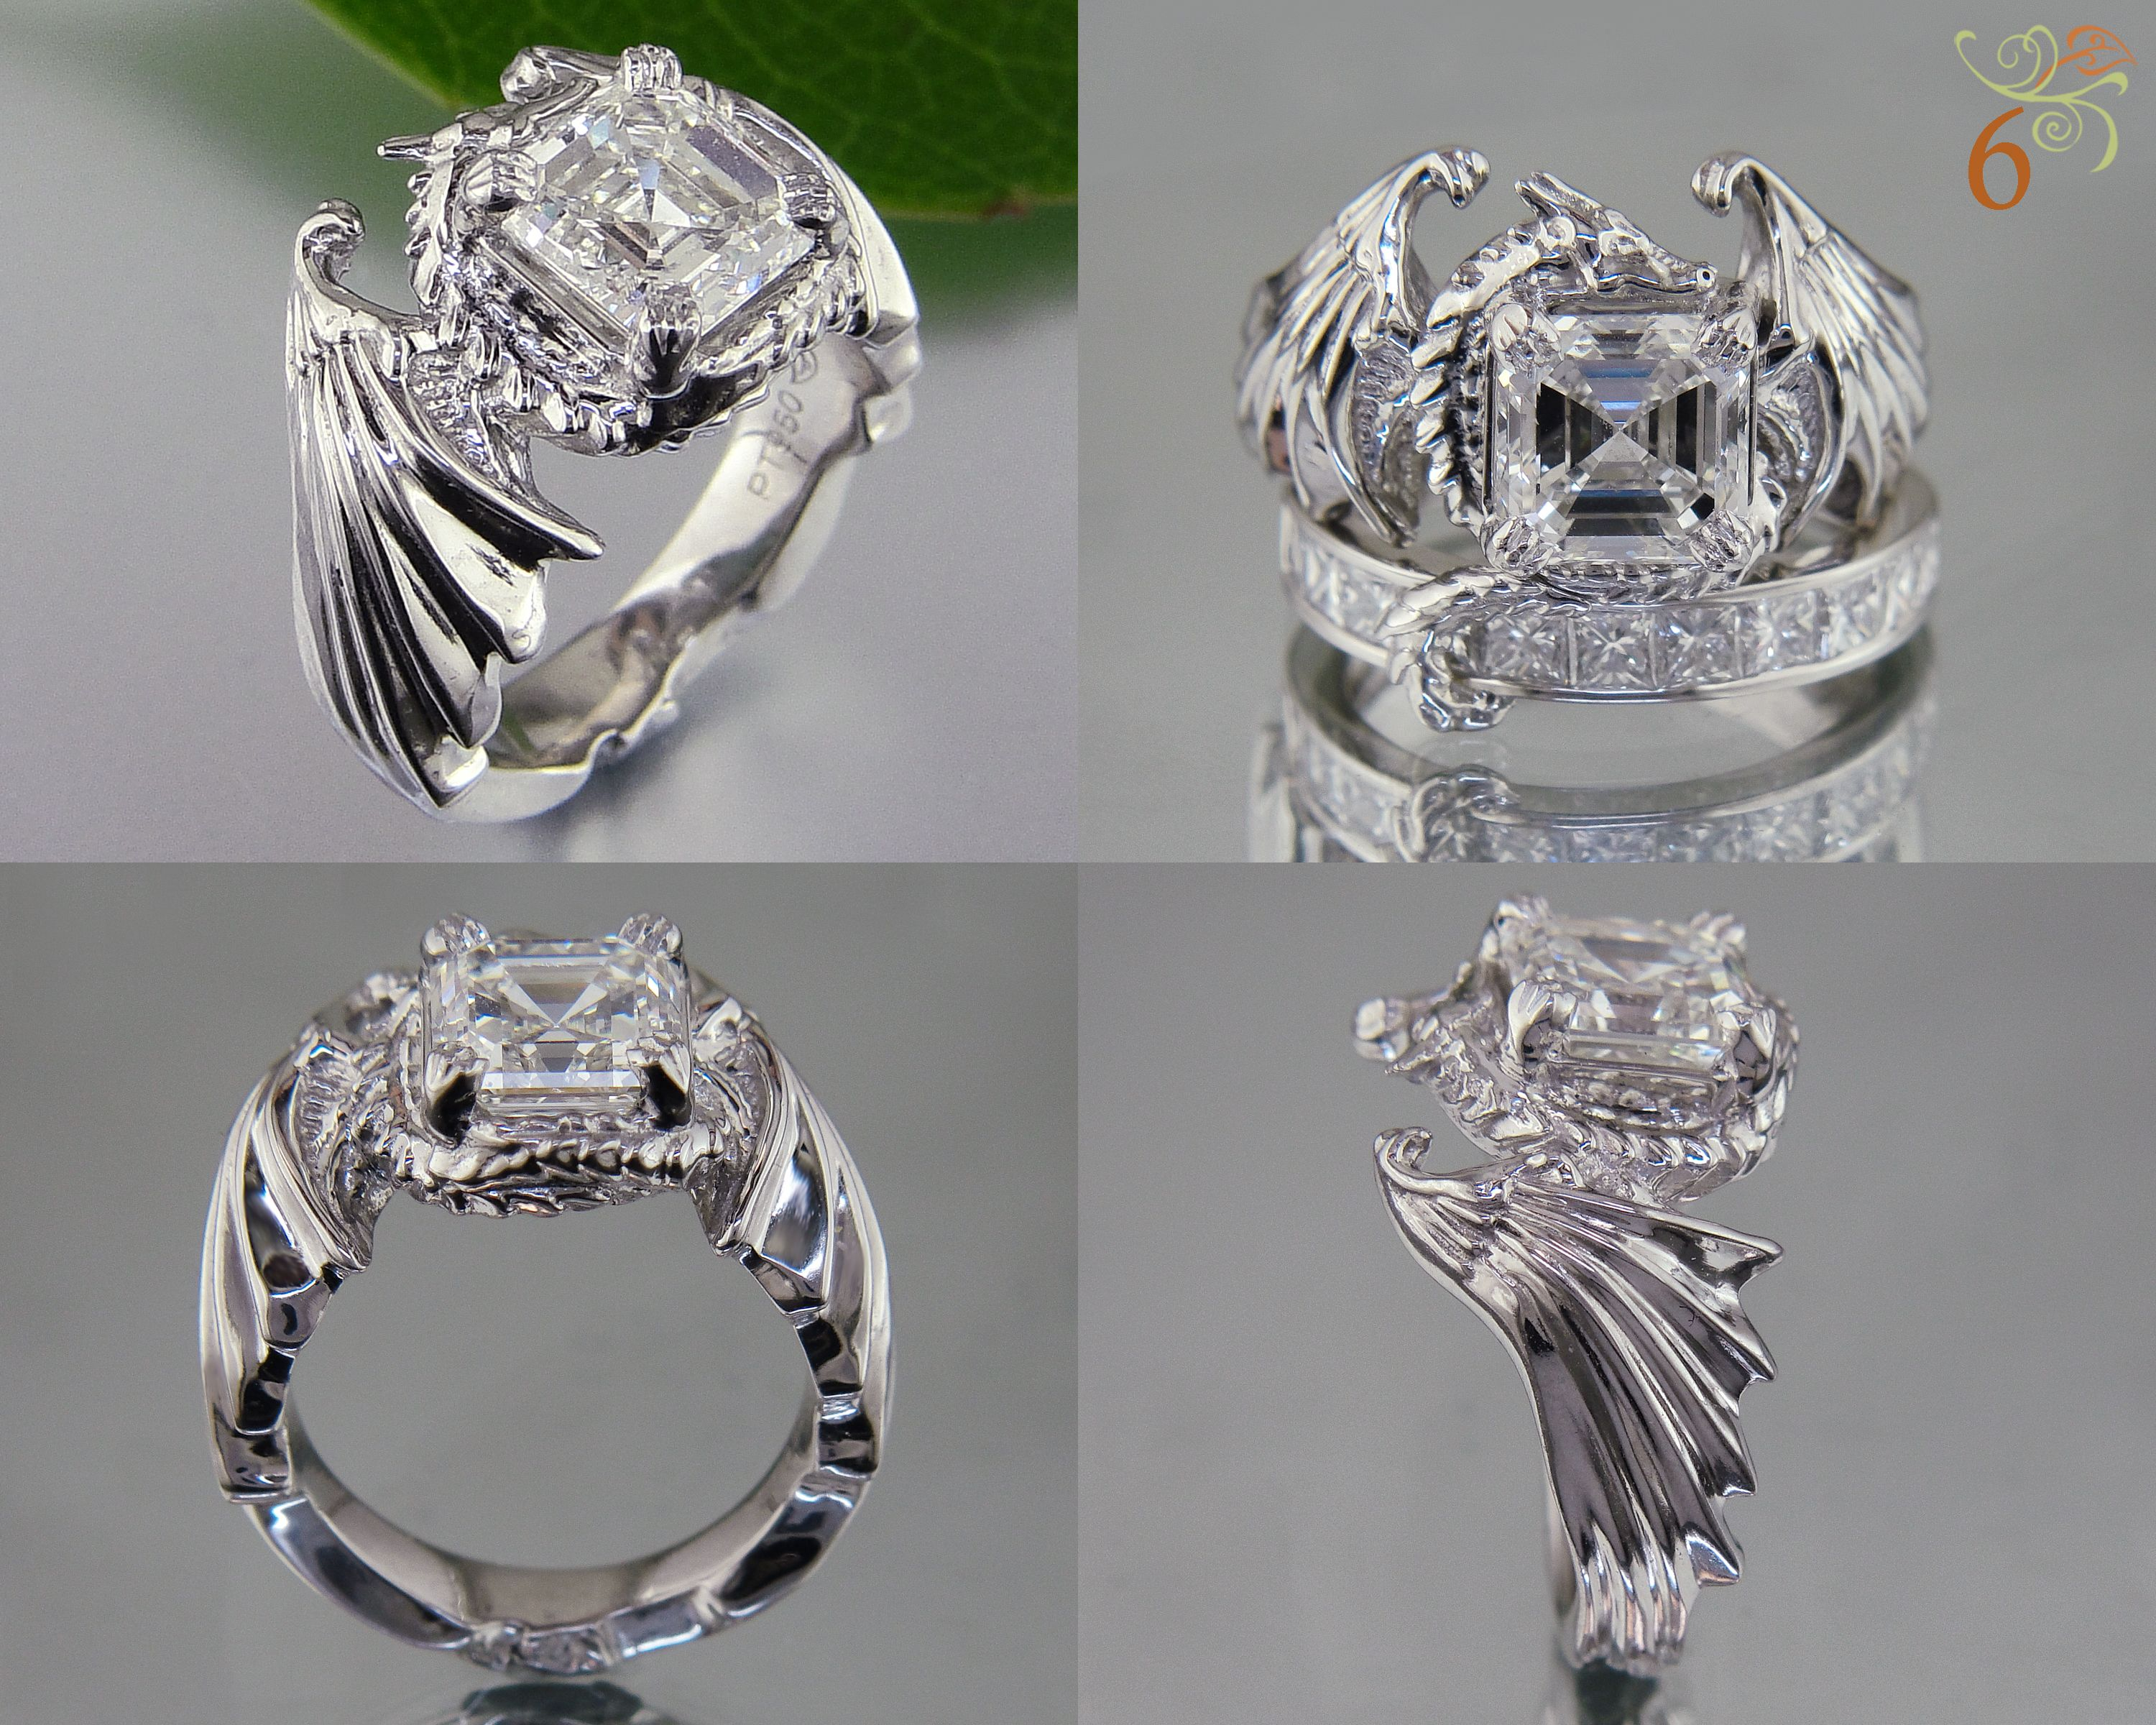 geek wedding rings marvel wedding rings Dragon ring with asscher centerstone and its tail wrapped over the top of the wedding band